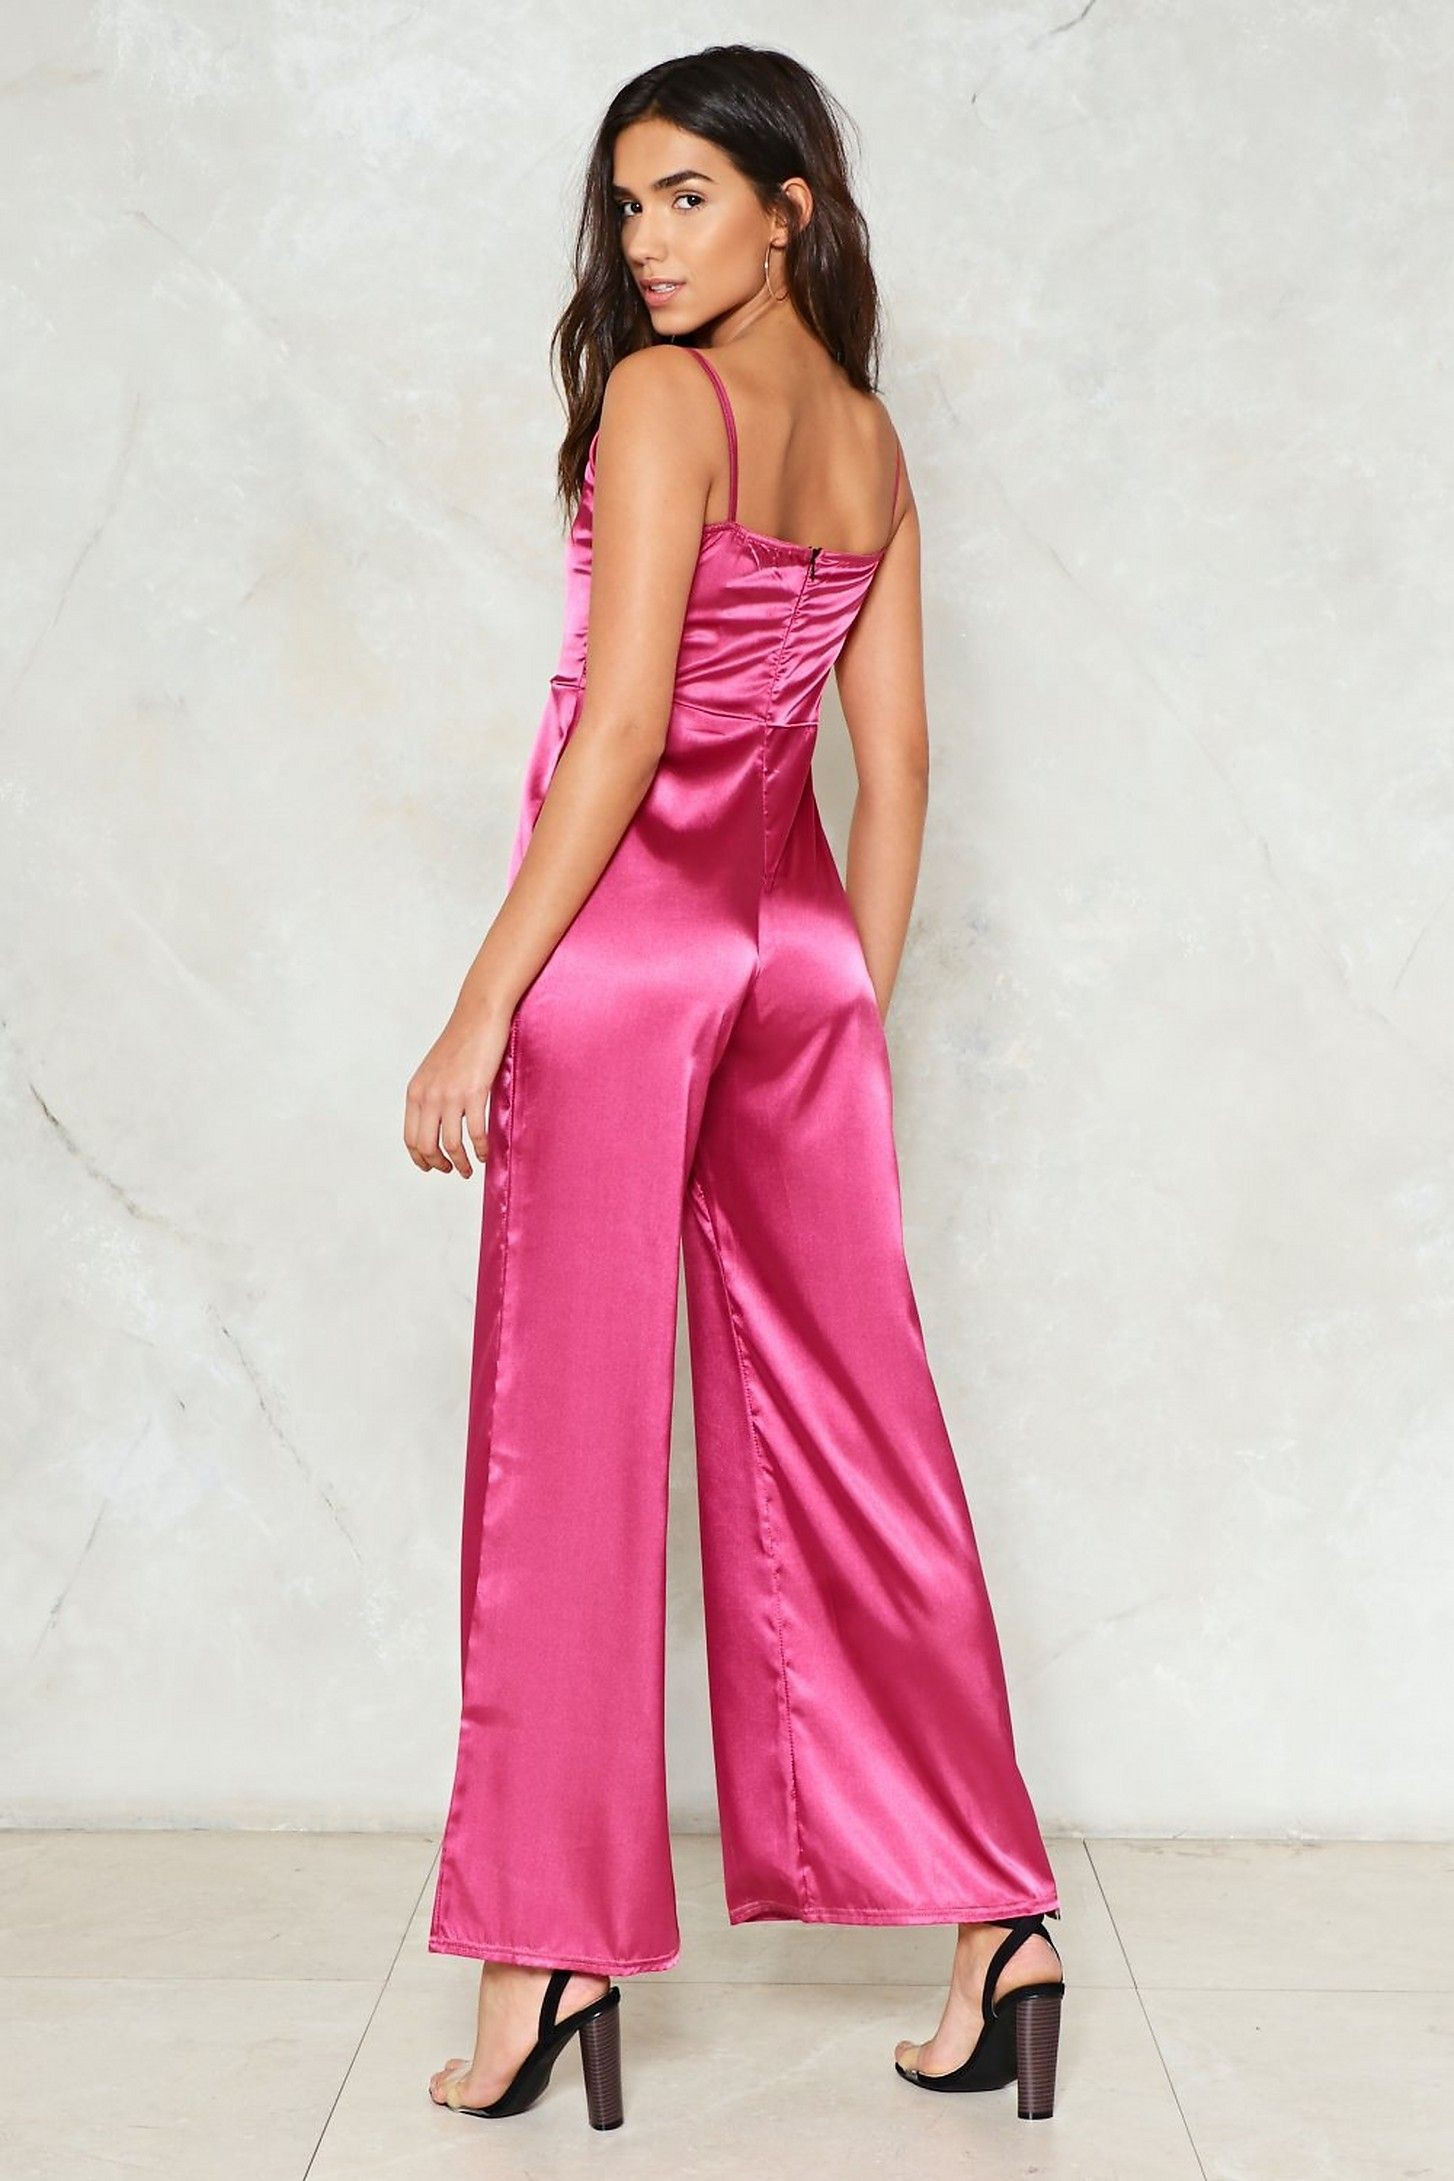 Magenta and pink colour ideas with cocktail dress, romper suit, formal wear, trousers